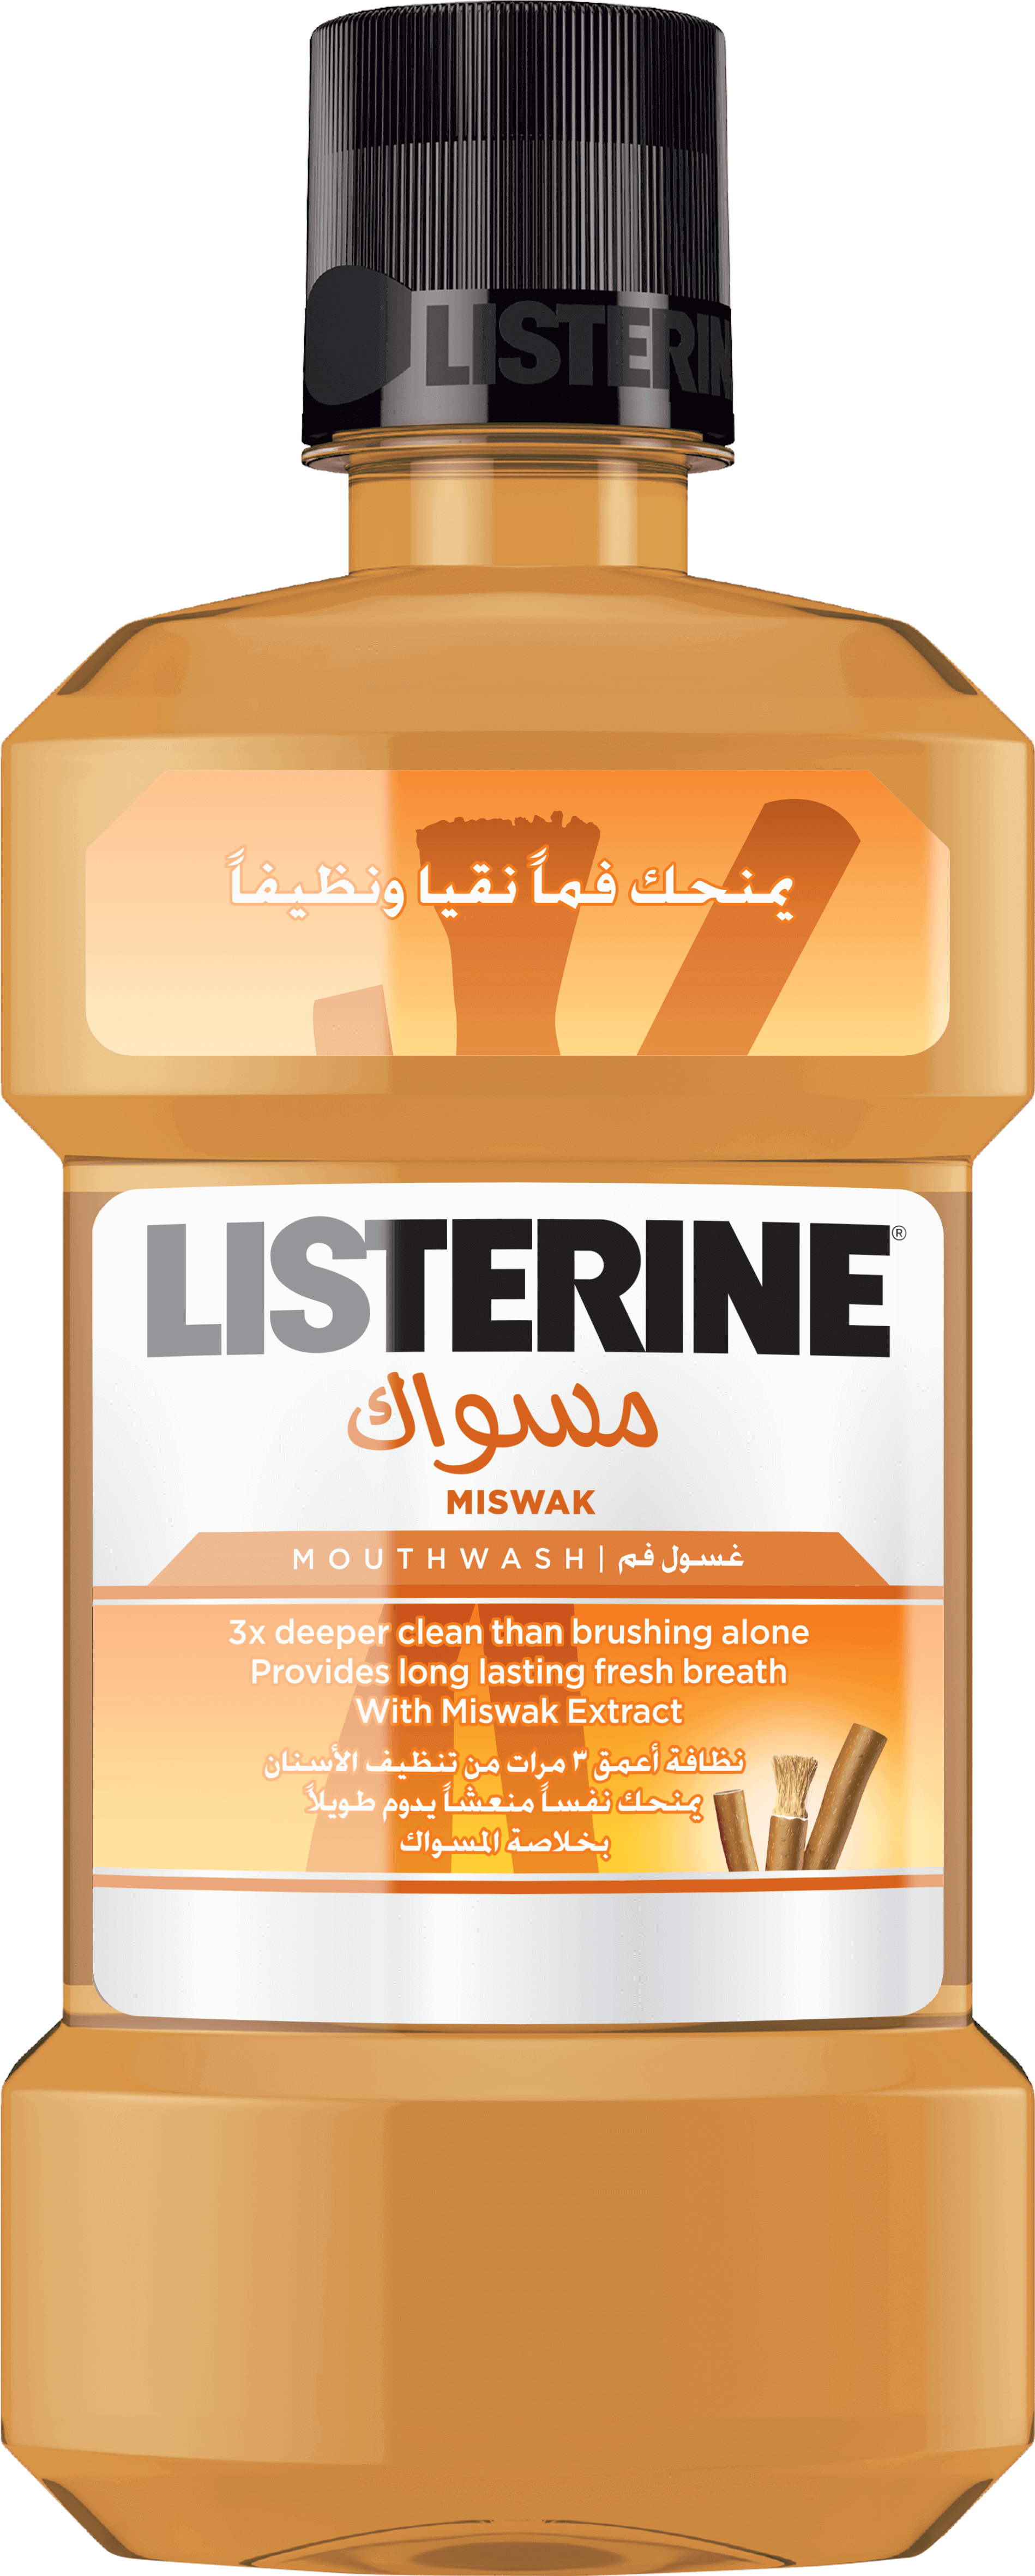 Listerine 174 Bring Out The Bold Listerine 174 Middle East